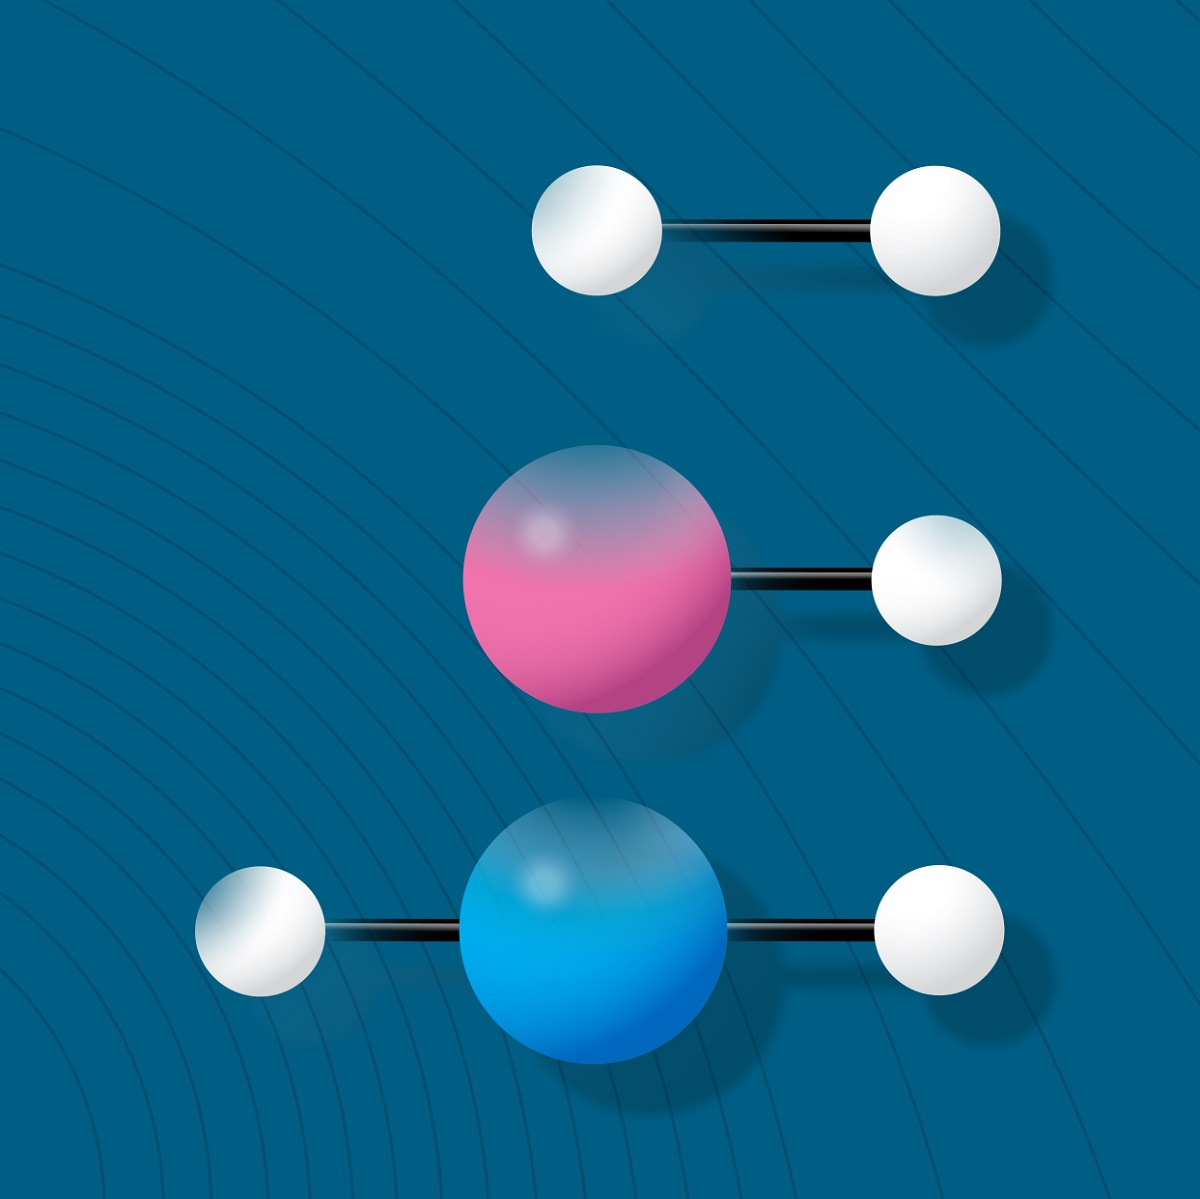 IBM Pioneers New Approach to Simulate Chemistry with Quantum Computing